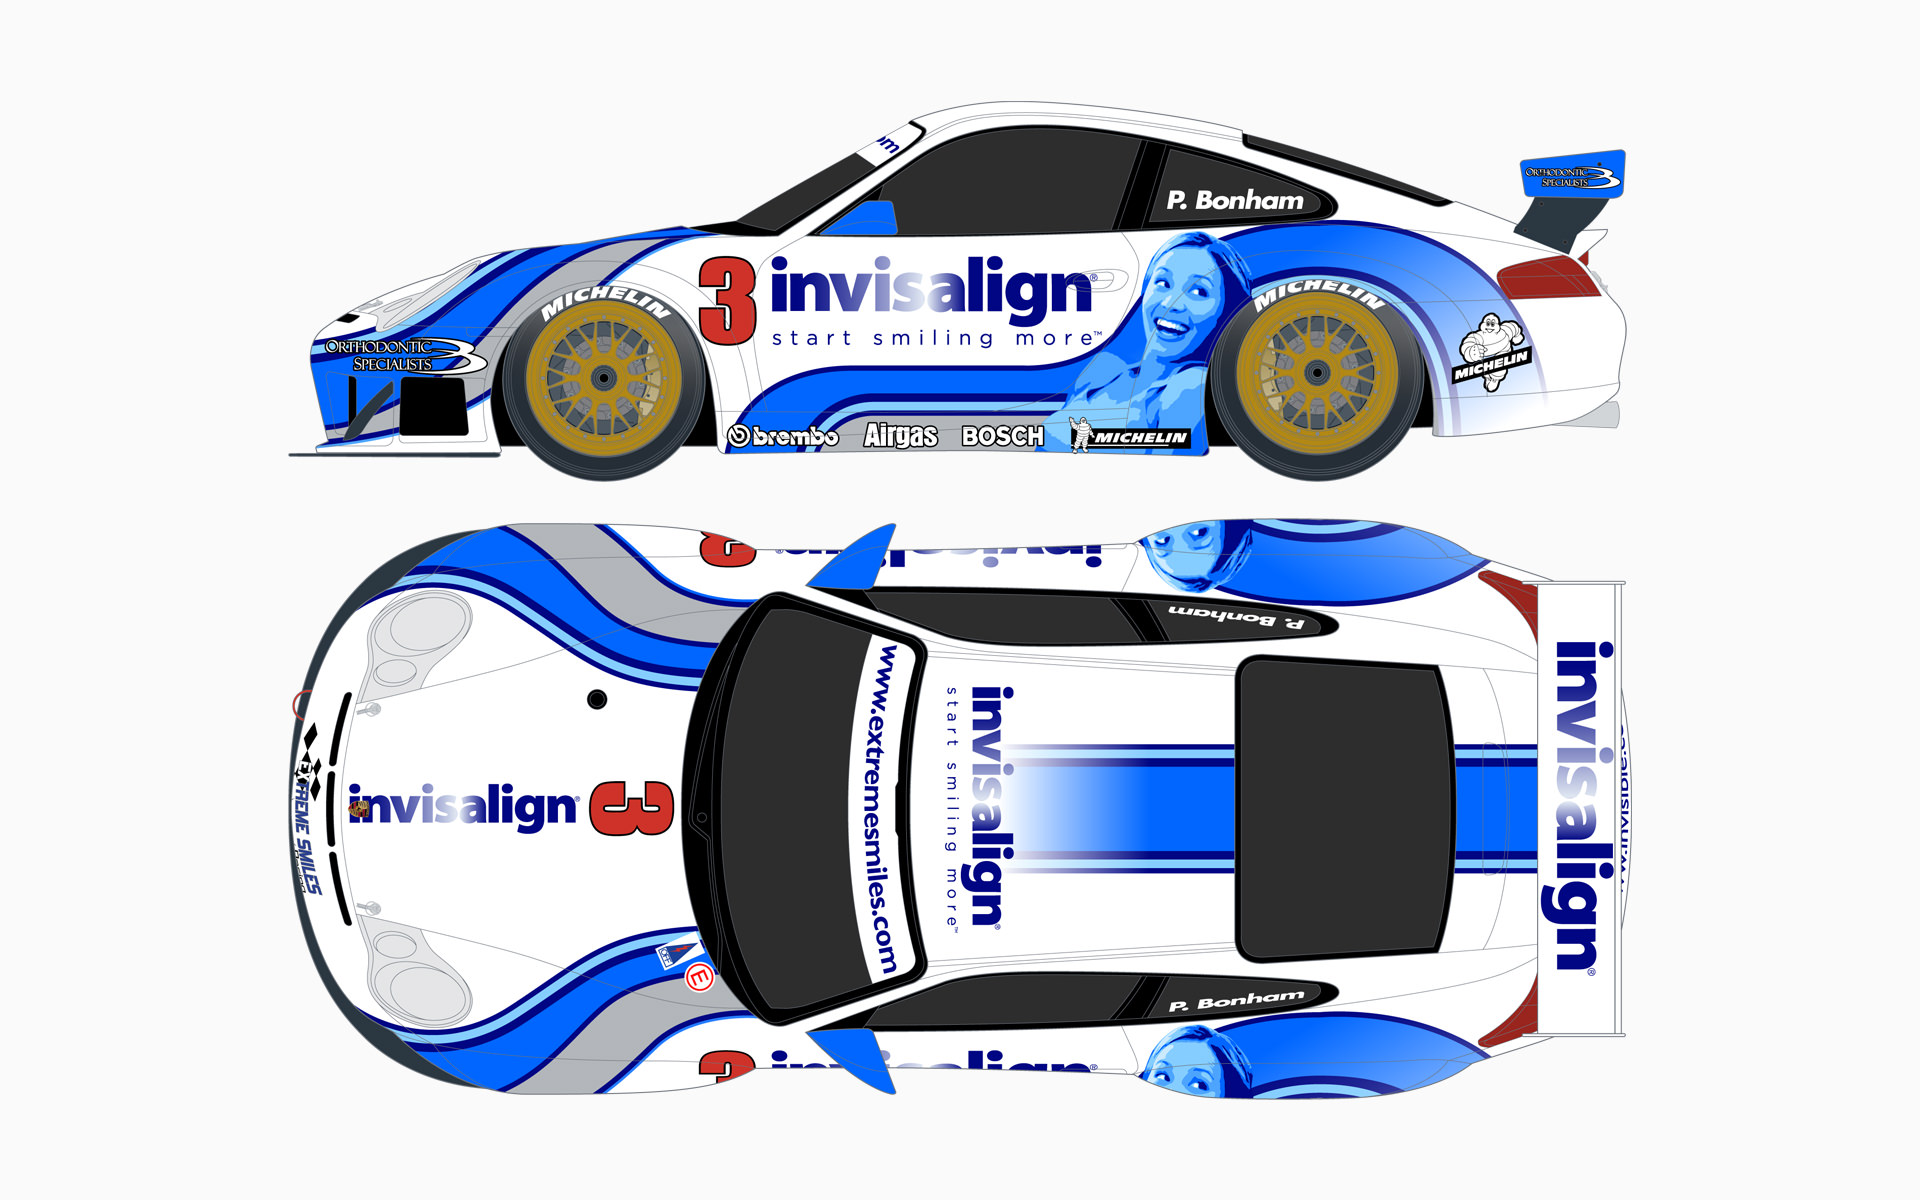 Invisalign Porsche 911 GT3RS Livery Elevations